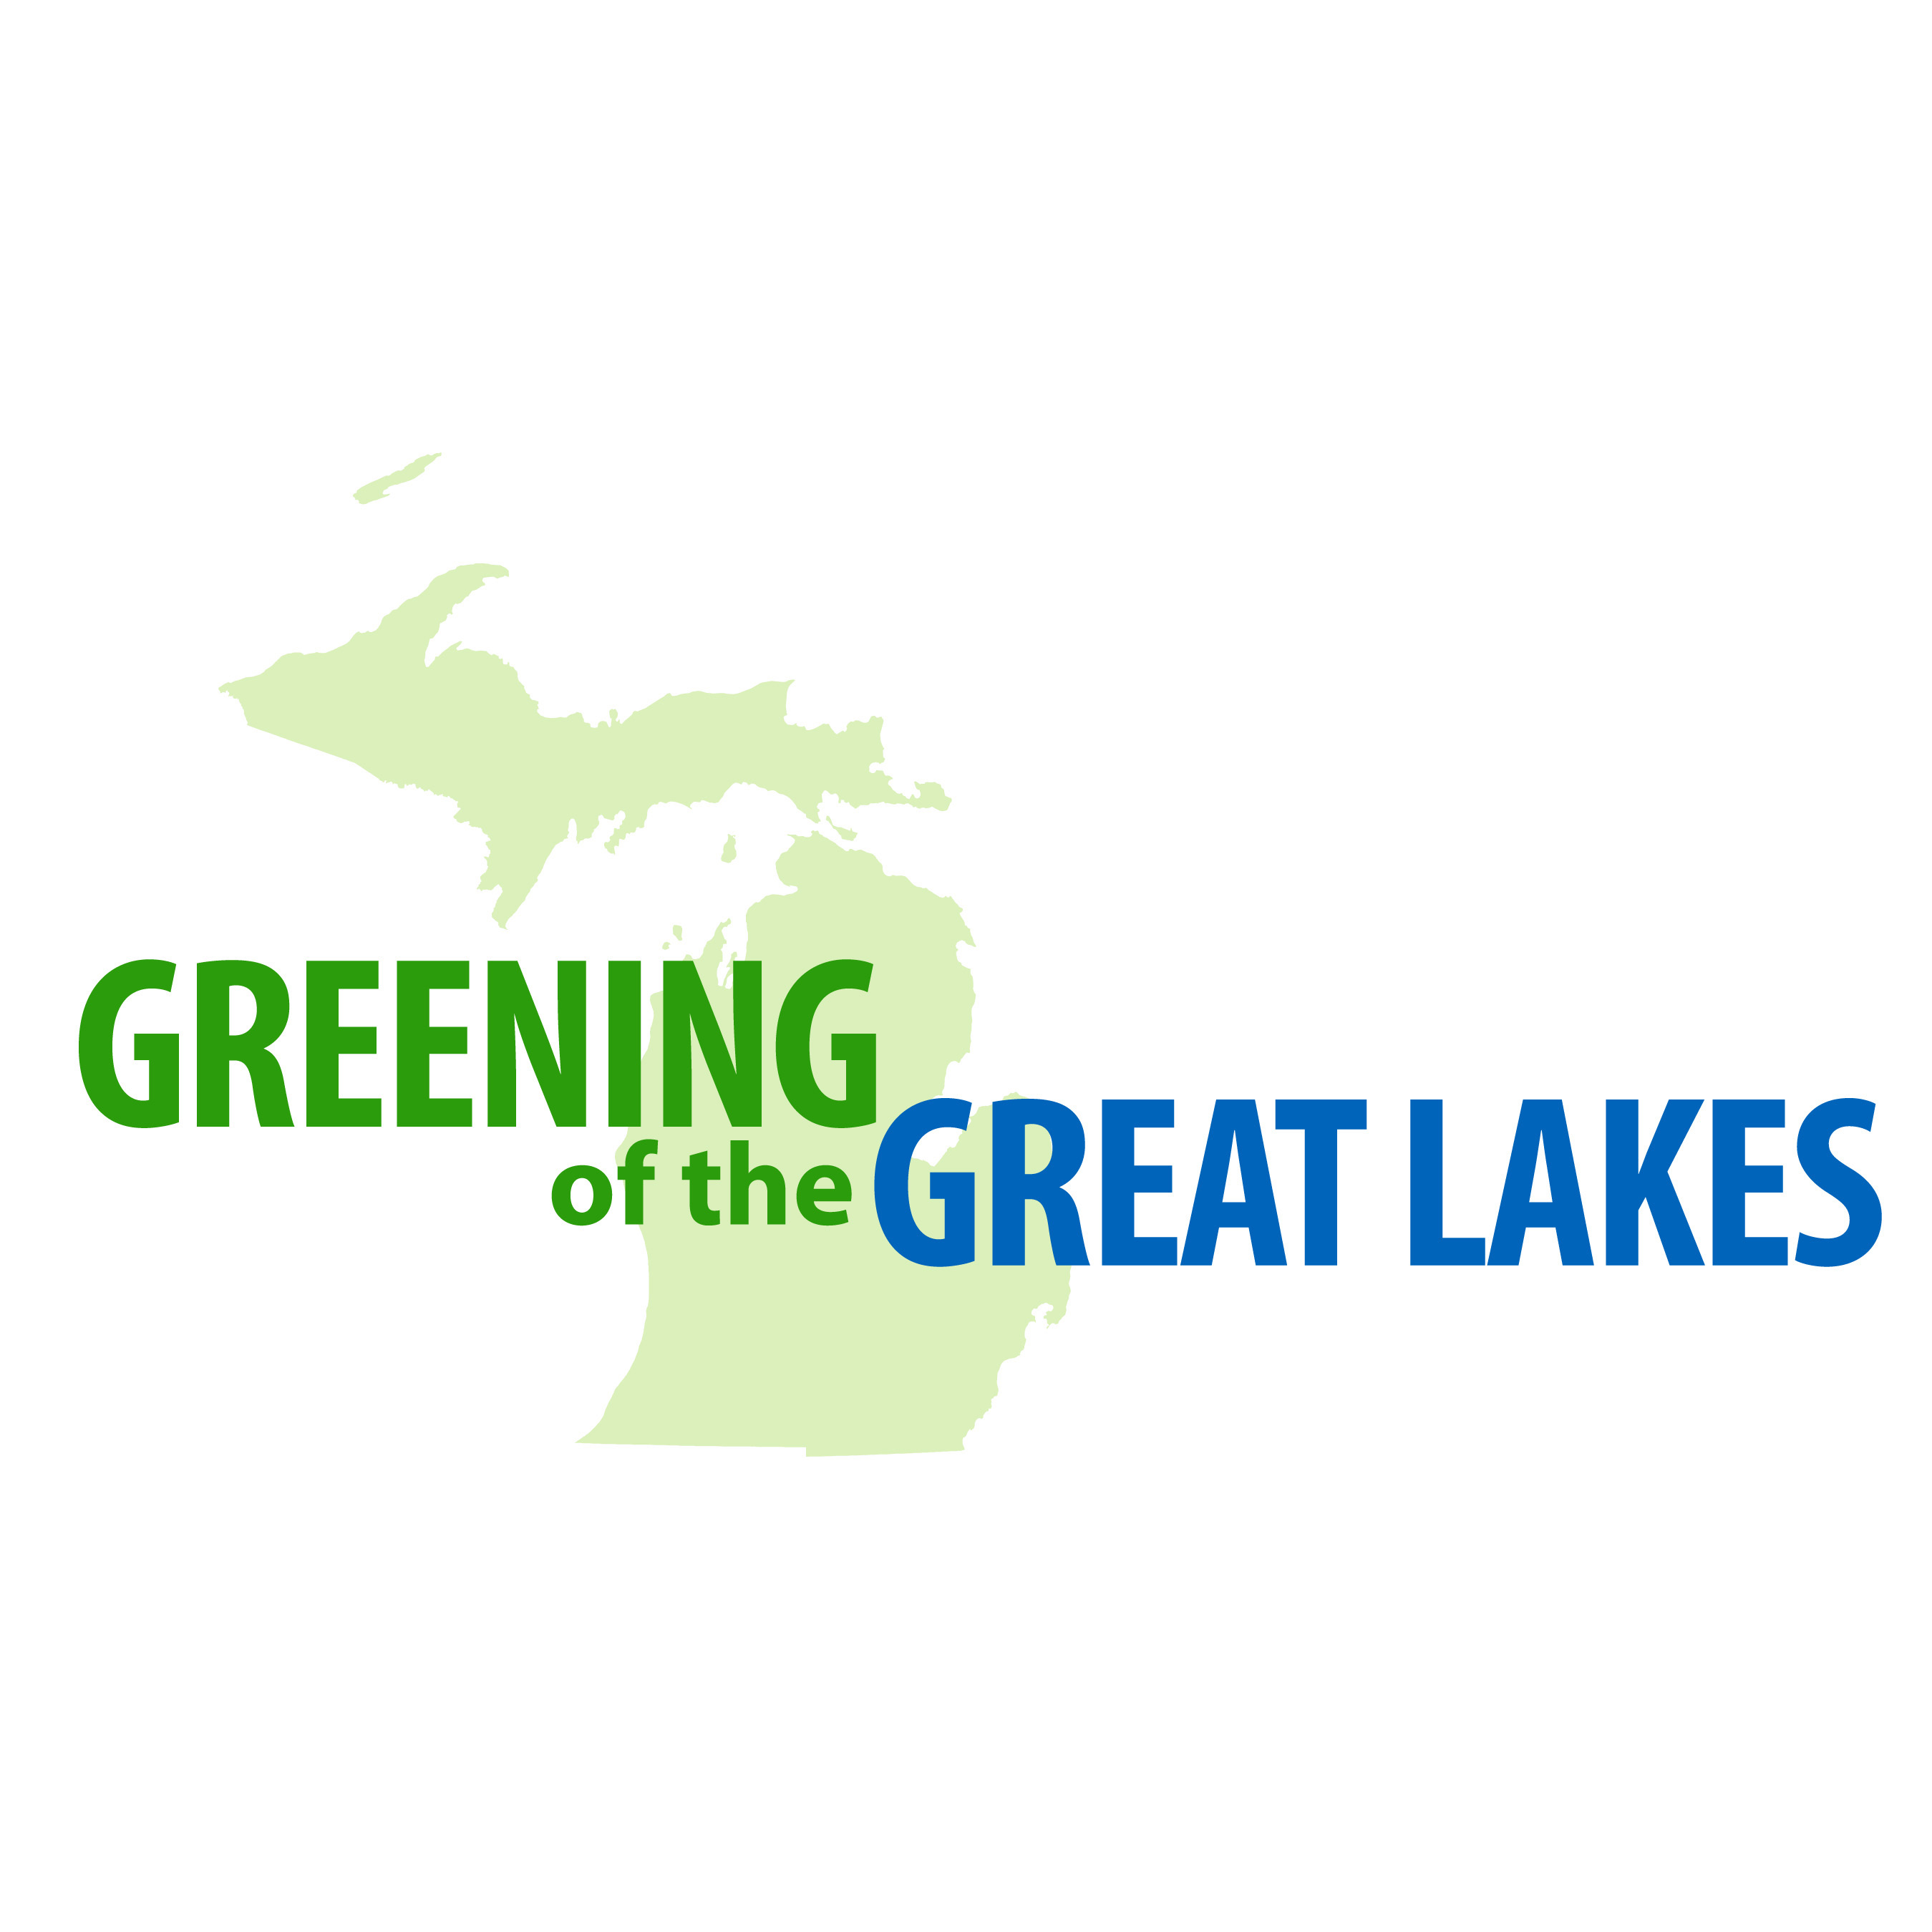 Greening of the Great Lakes.